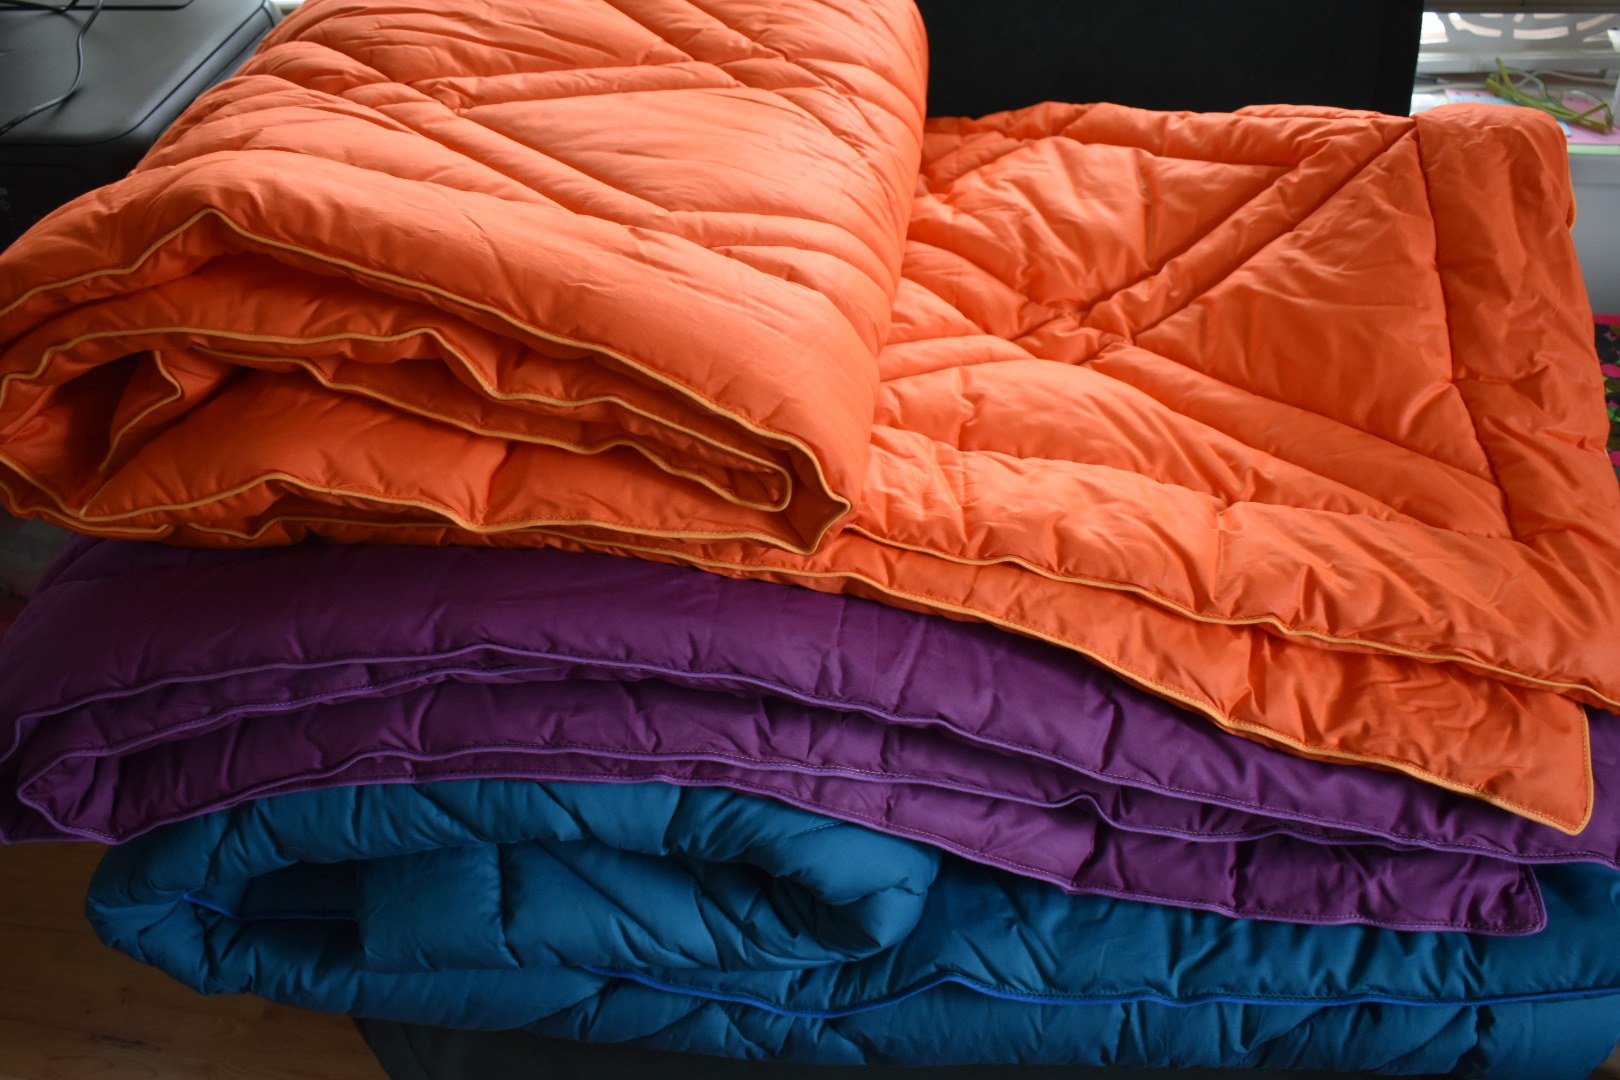 Coverless duvets Orange and Purple and Teal12